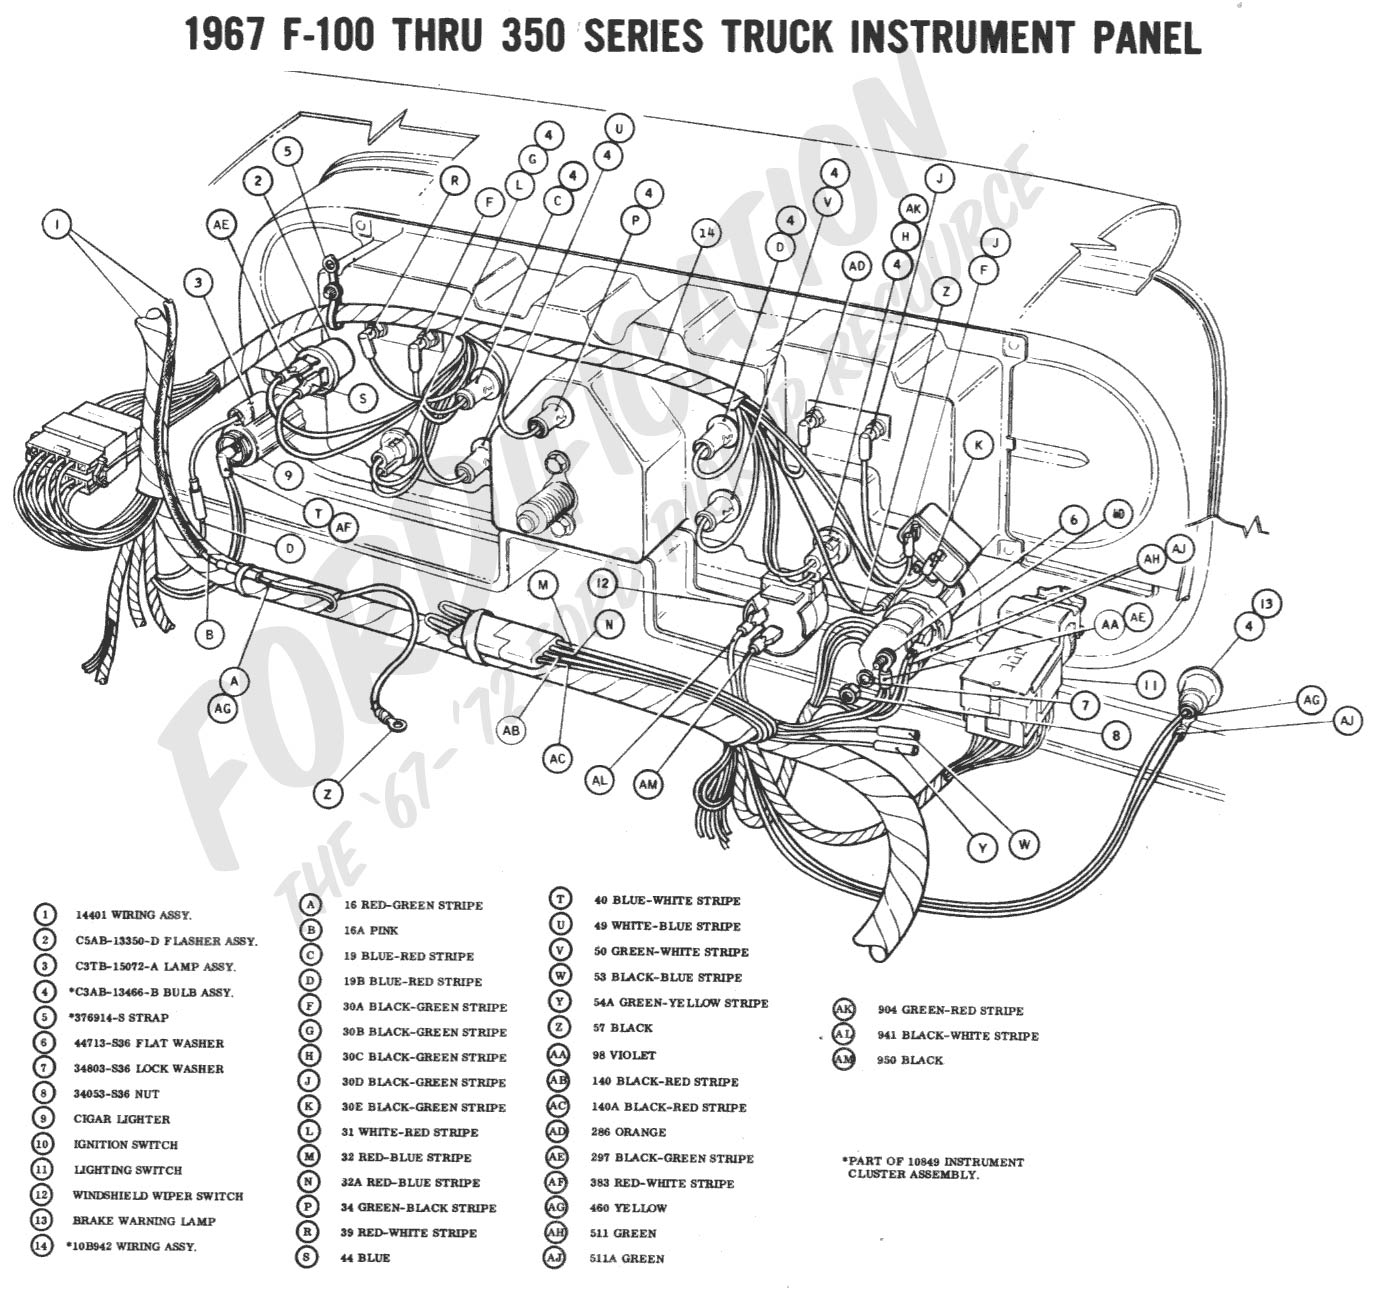 1965 ford f 100 instrument panel wiring schematic 1965 ford mustang fuse box diagram wiring schematic my 1967 ford f-100 with a 68 mustang 289 flutters when it ...